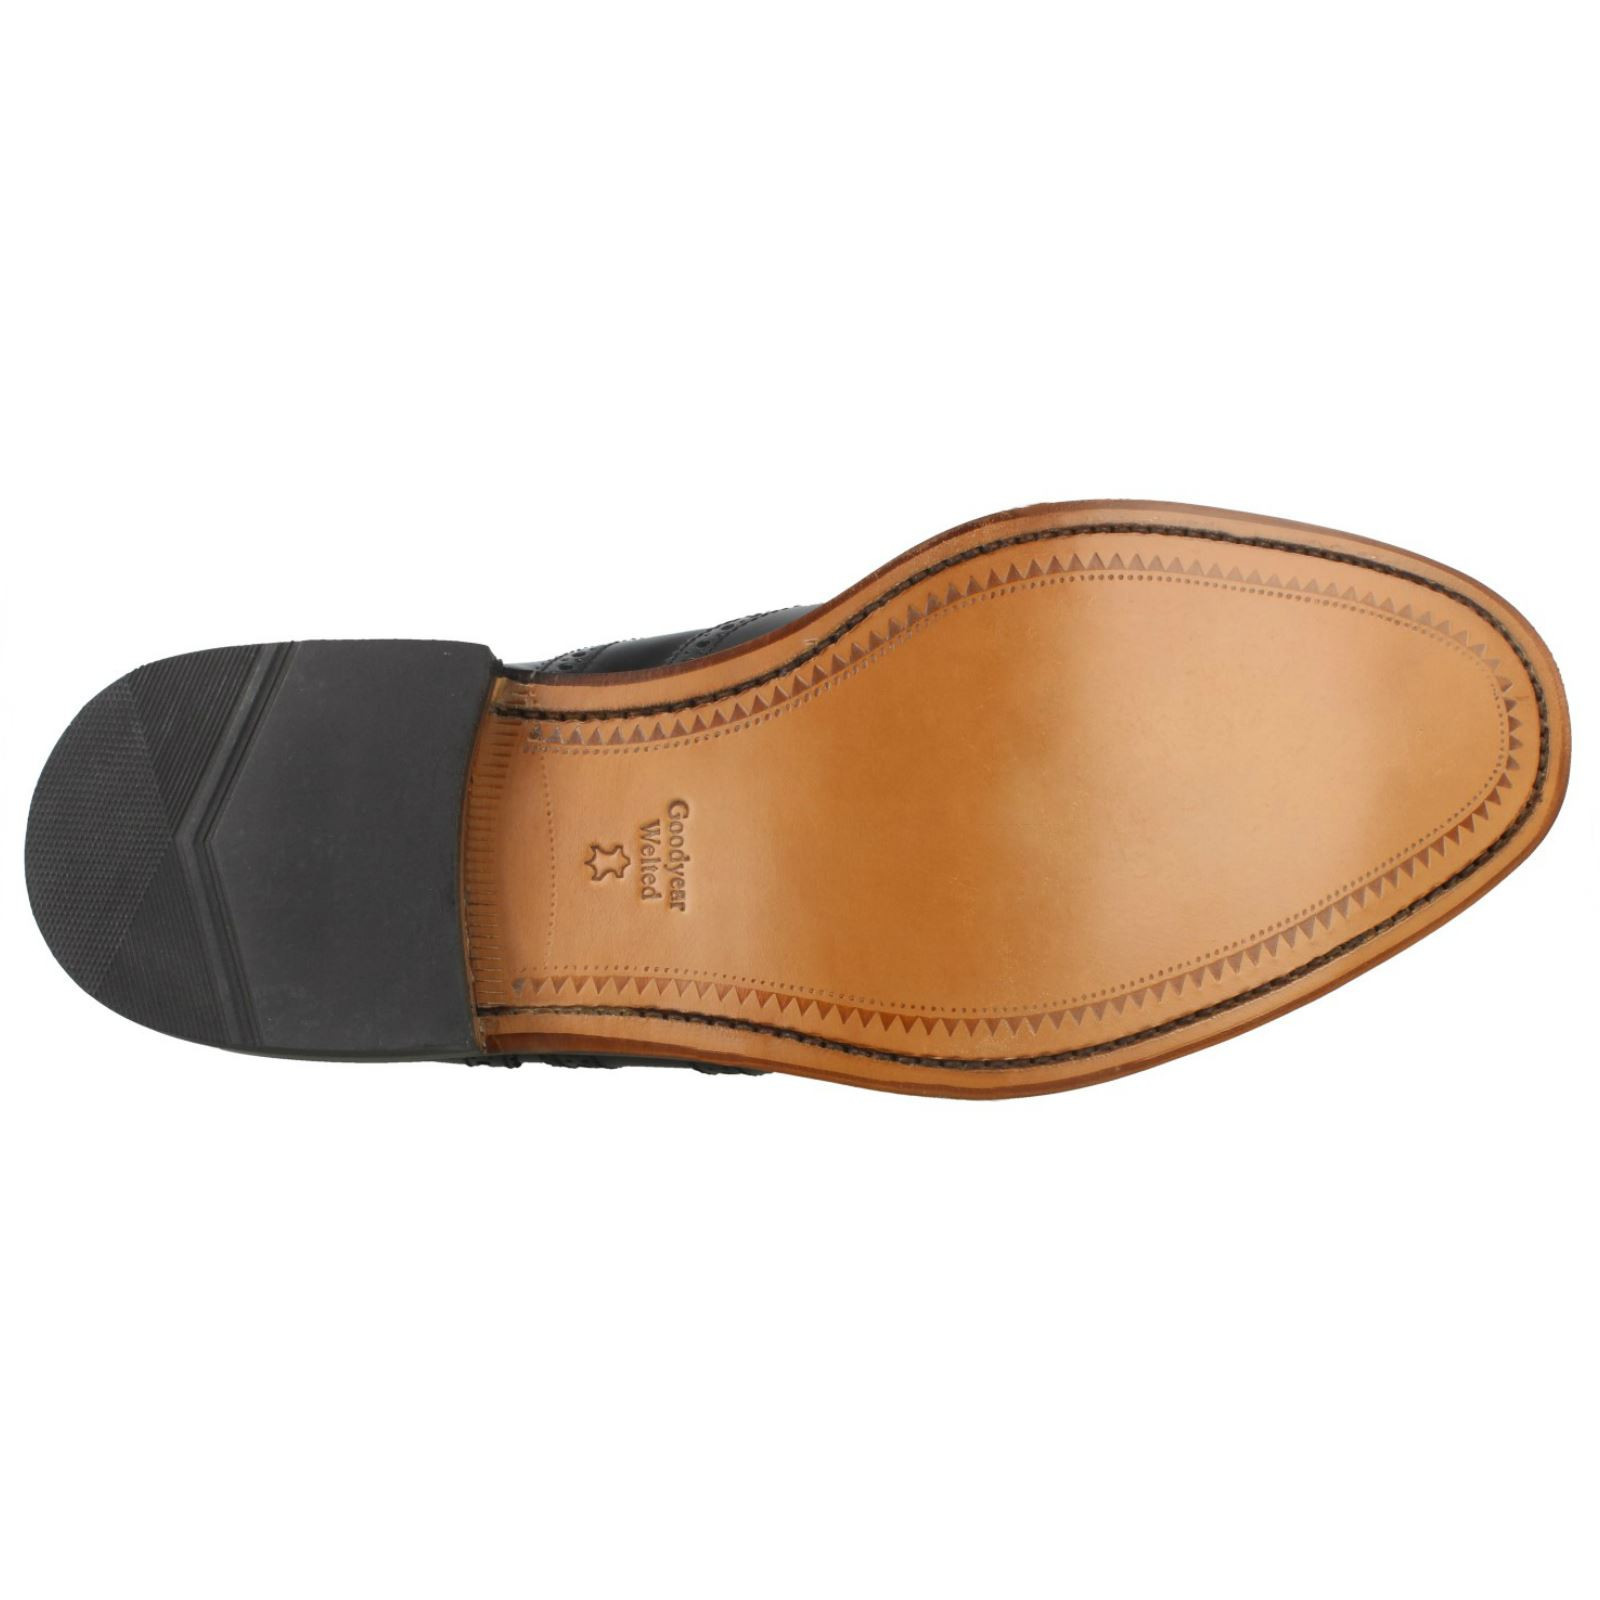 Uomo Loake Leder Smart 202B Brogues 202B Smart 841e6a